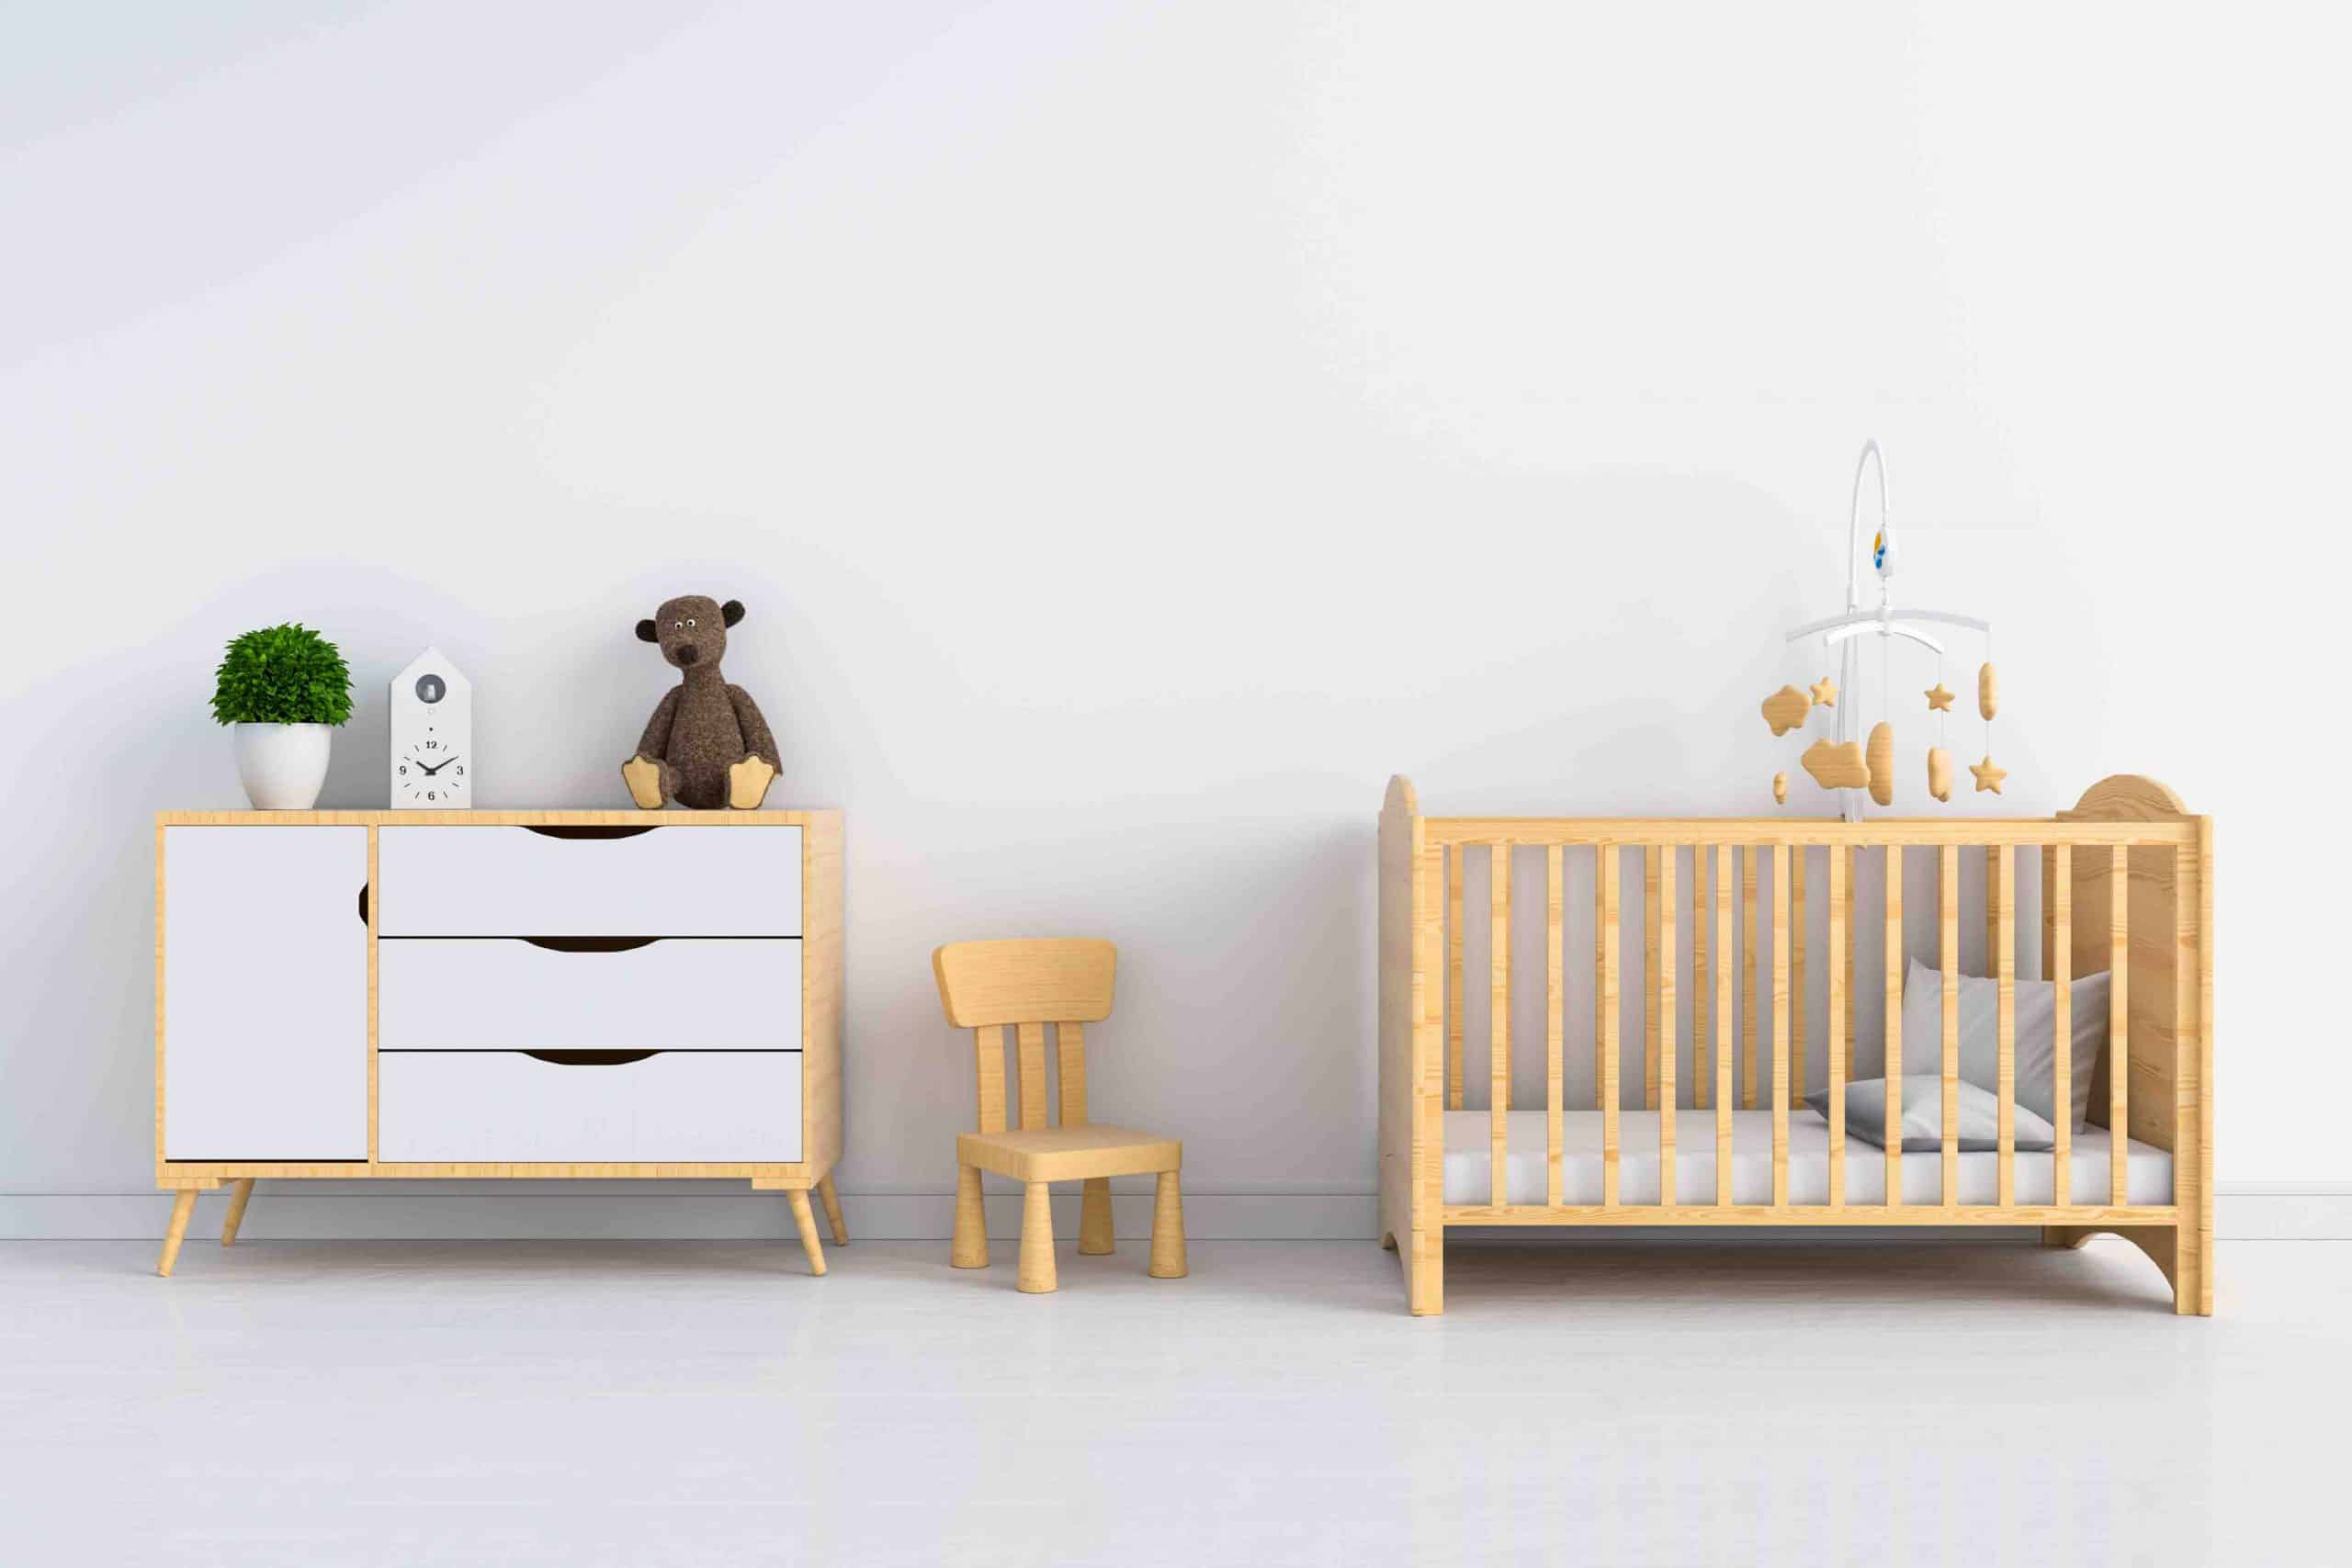 How To Design a Baby Nursery: Timeless Decorating Ideas